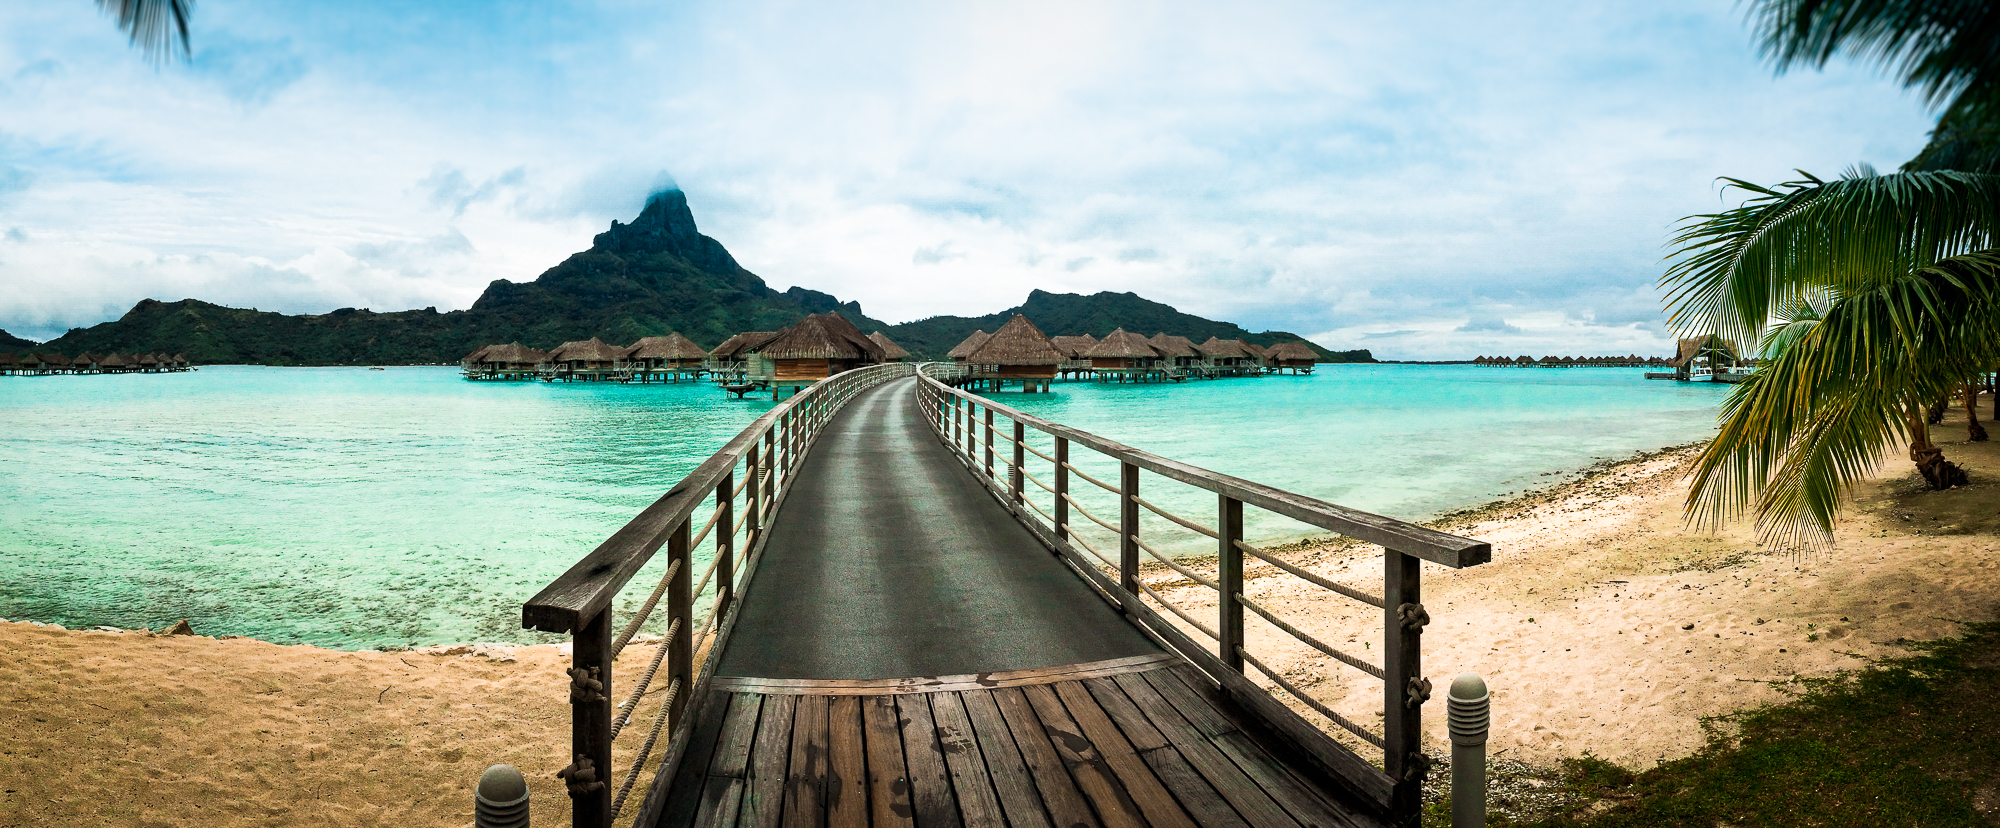 Bora Bora, the pristine paradise just south of Tahiti, is built from the flooded caldera of a long-dormant volcano. This creates a ring of lush islands surrounding a turquoise lagoon.